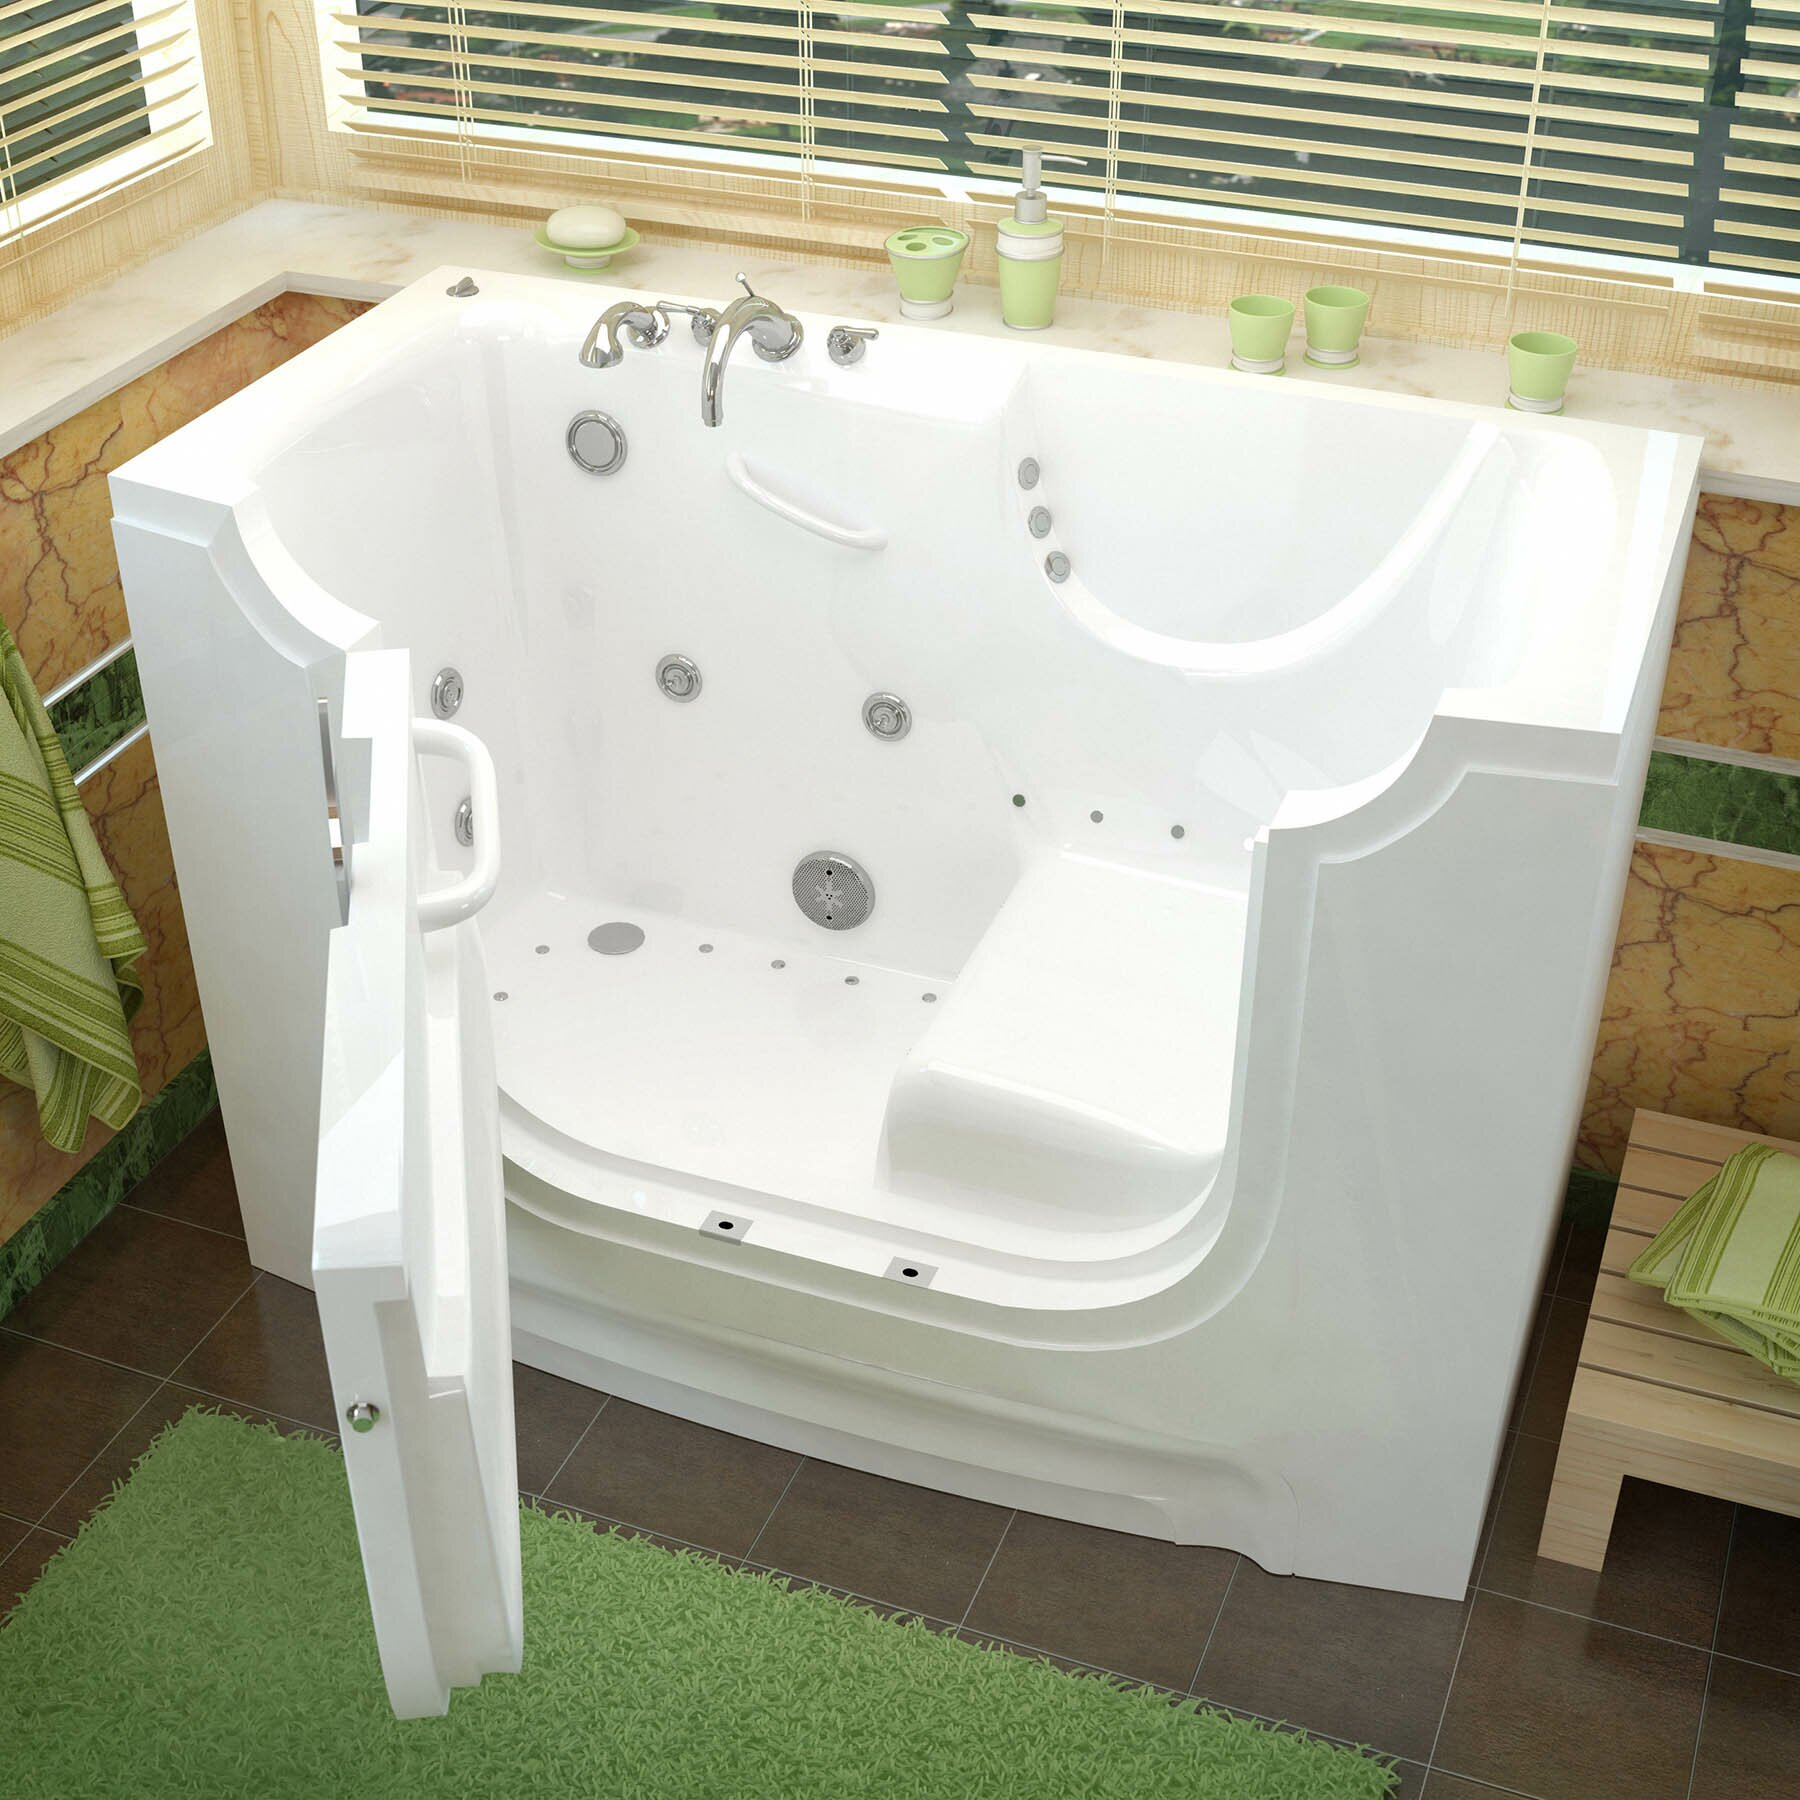 Therapeutic Tubs HandiTub 60 x 30 Whirlpool - Air Jetted  Wheelchair Accessible Bathtub